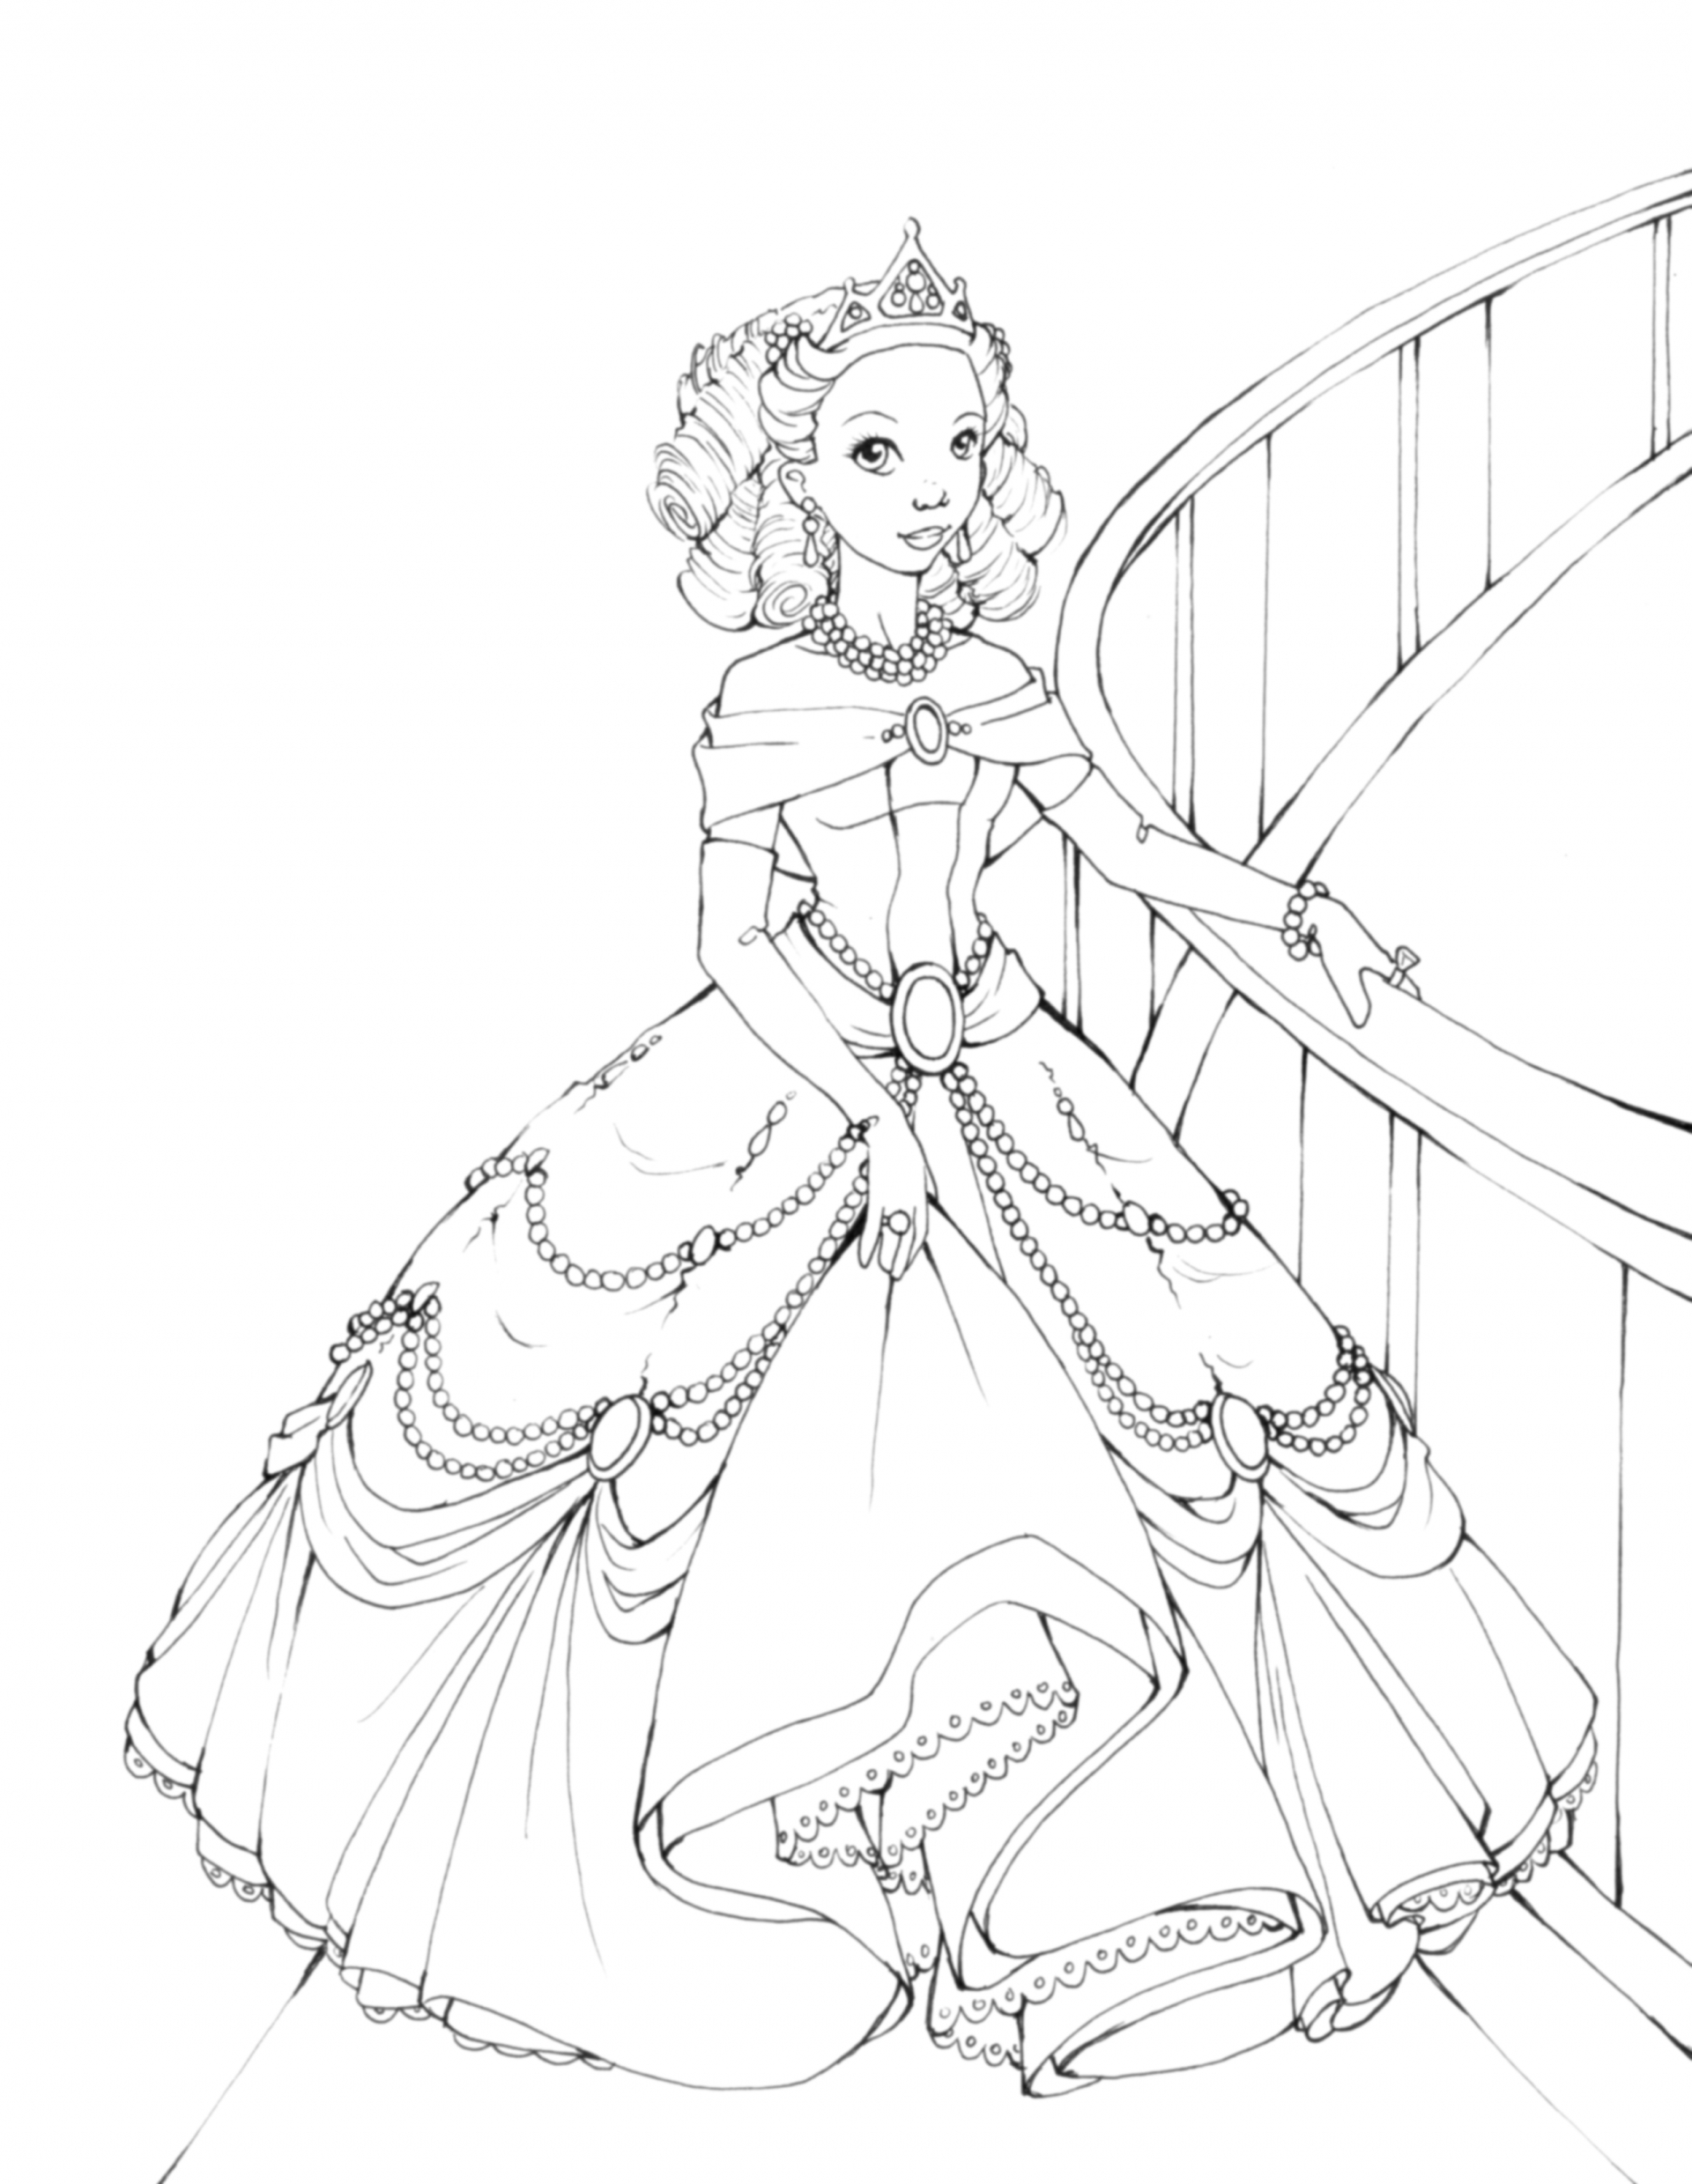 Barbie Drawing Picture At Getdrawings Com Free For Personal Use